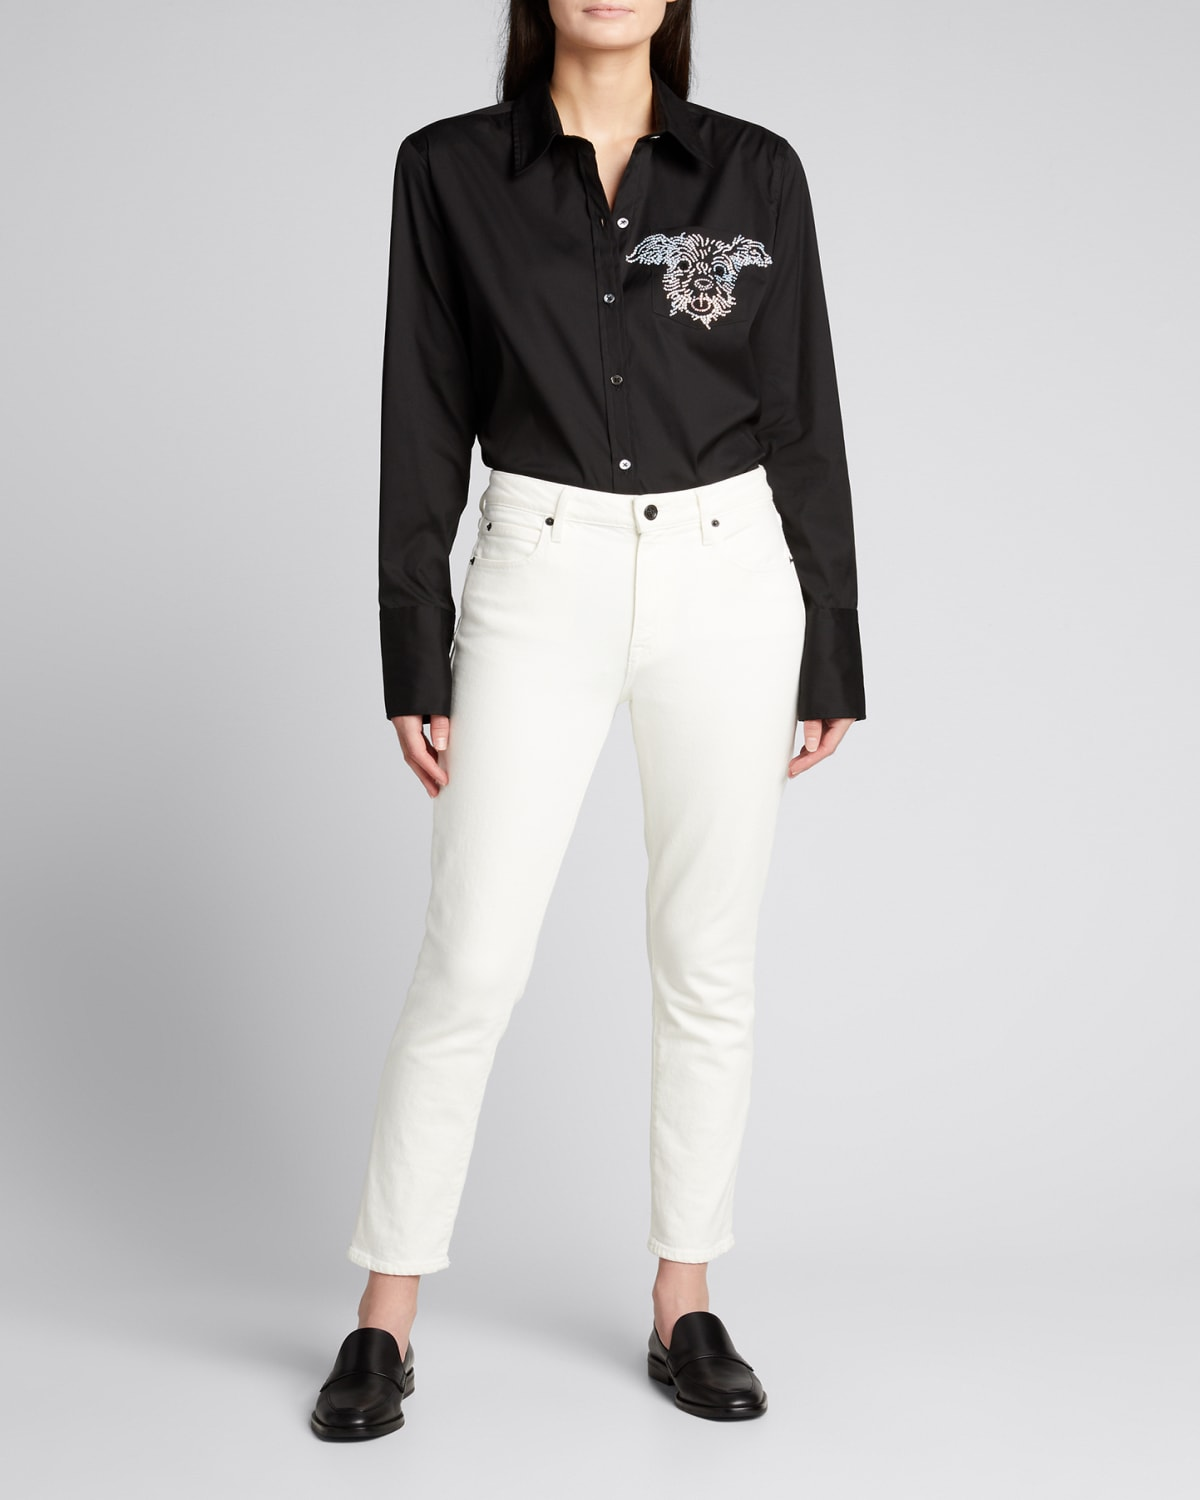 Embellished Classic Collared Shirt